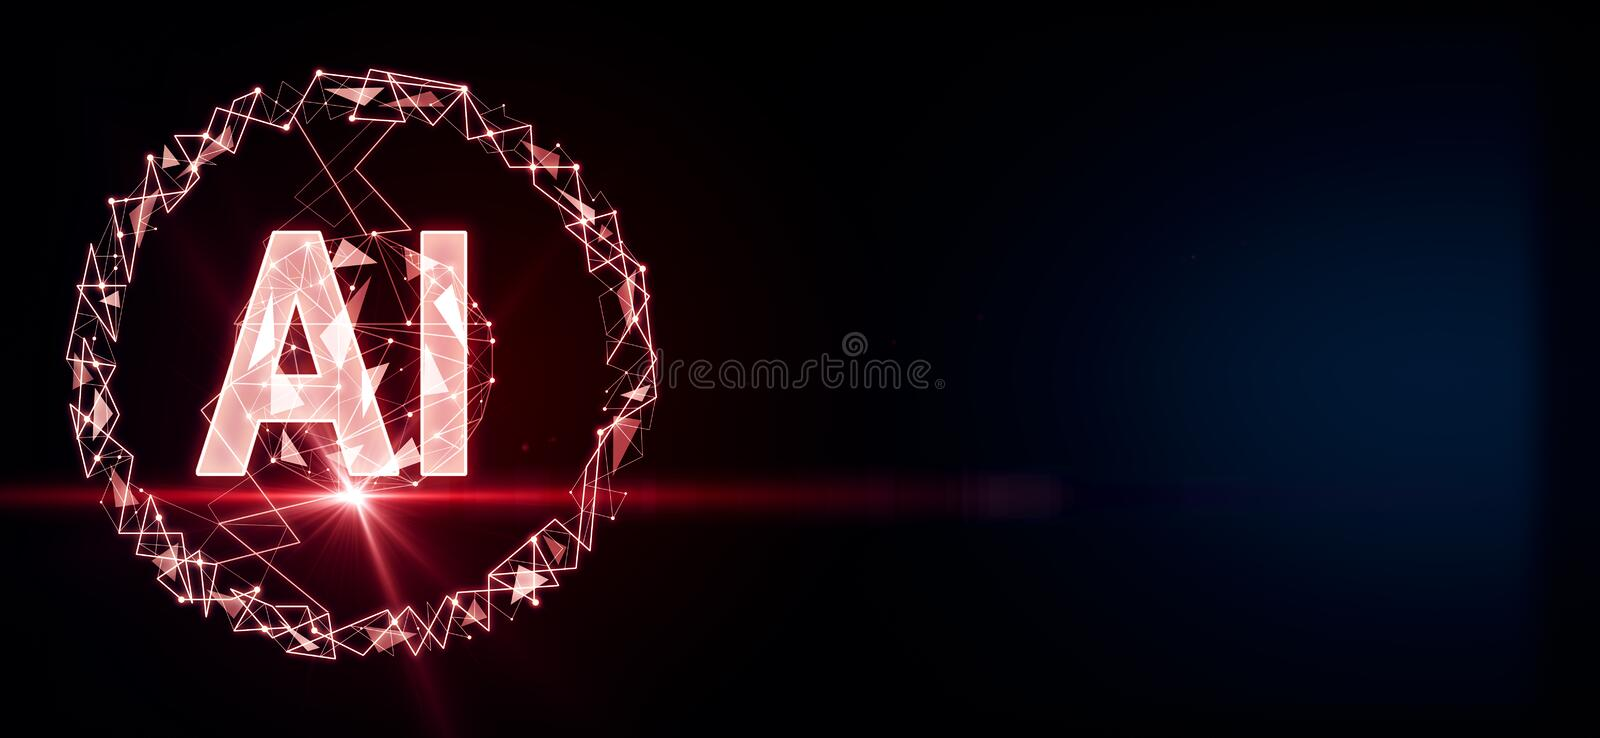 Artificial intelligence concept with big AI letters and red flash at dark background stock illustration